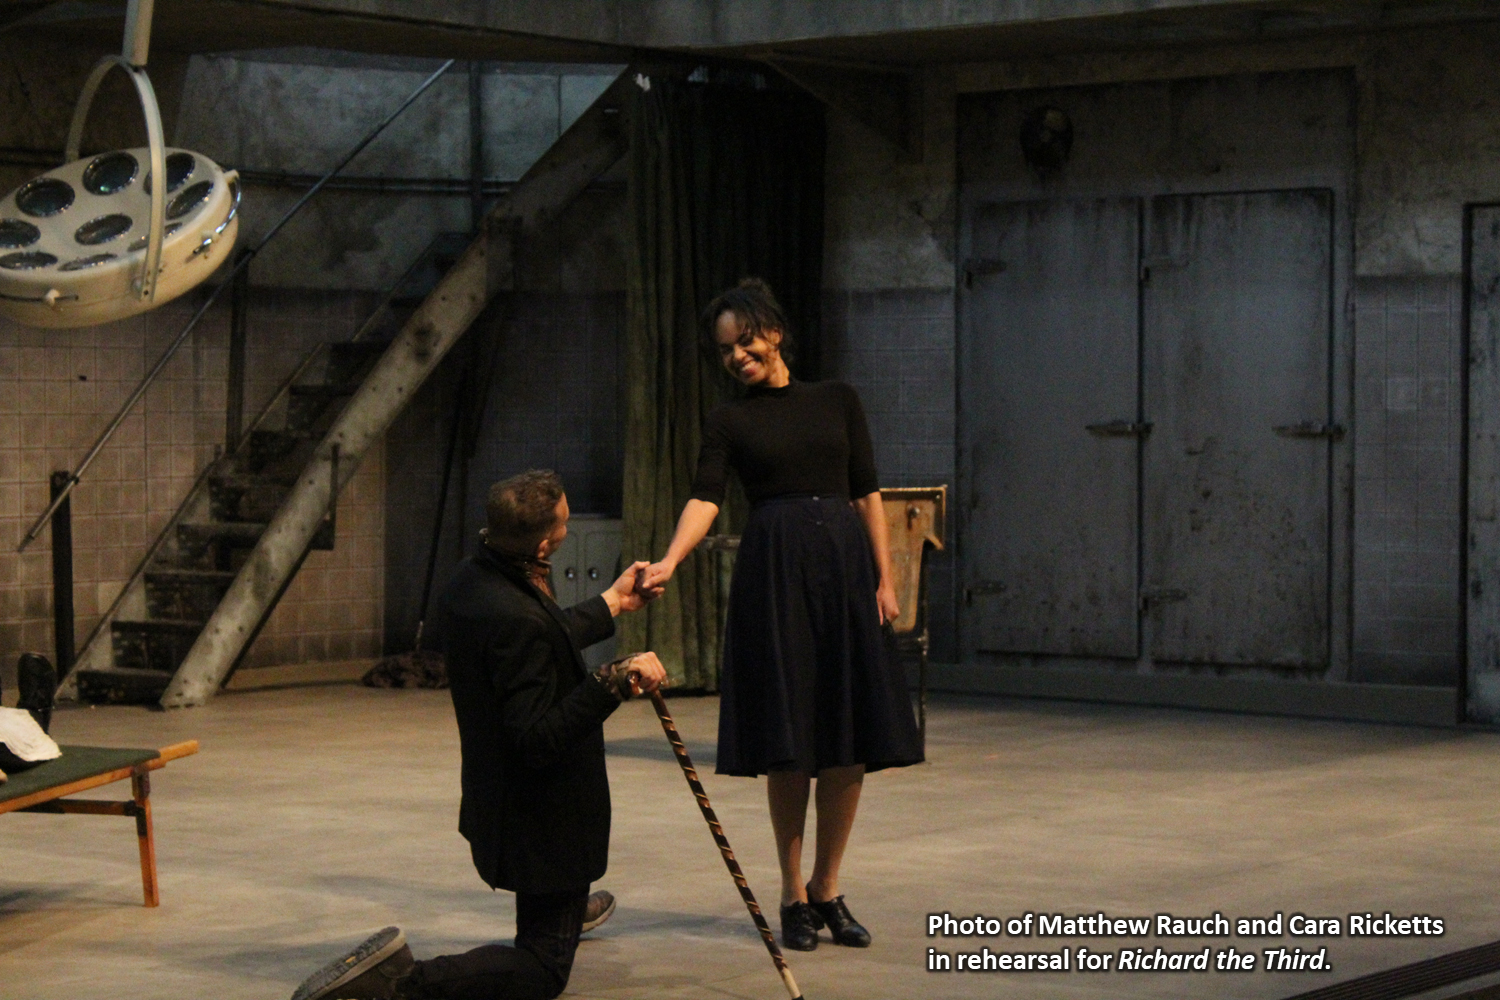 Photo of Matthew Rauch and Cara Ricketts in rehearsal for Richard the Third.